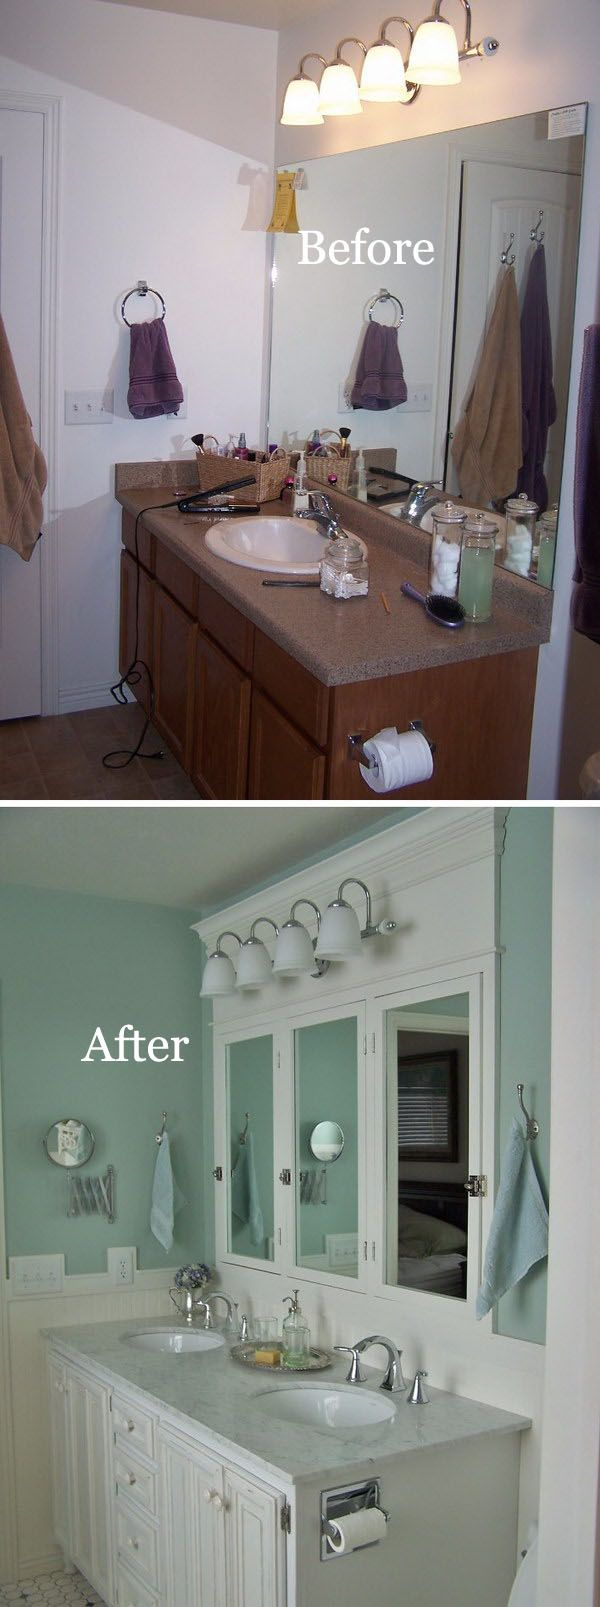 Bathroom Mirror Non Steam best 25+ medicine cabinets with lights ideas on pinterest